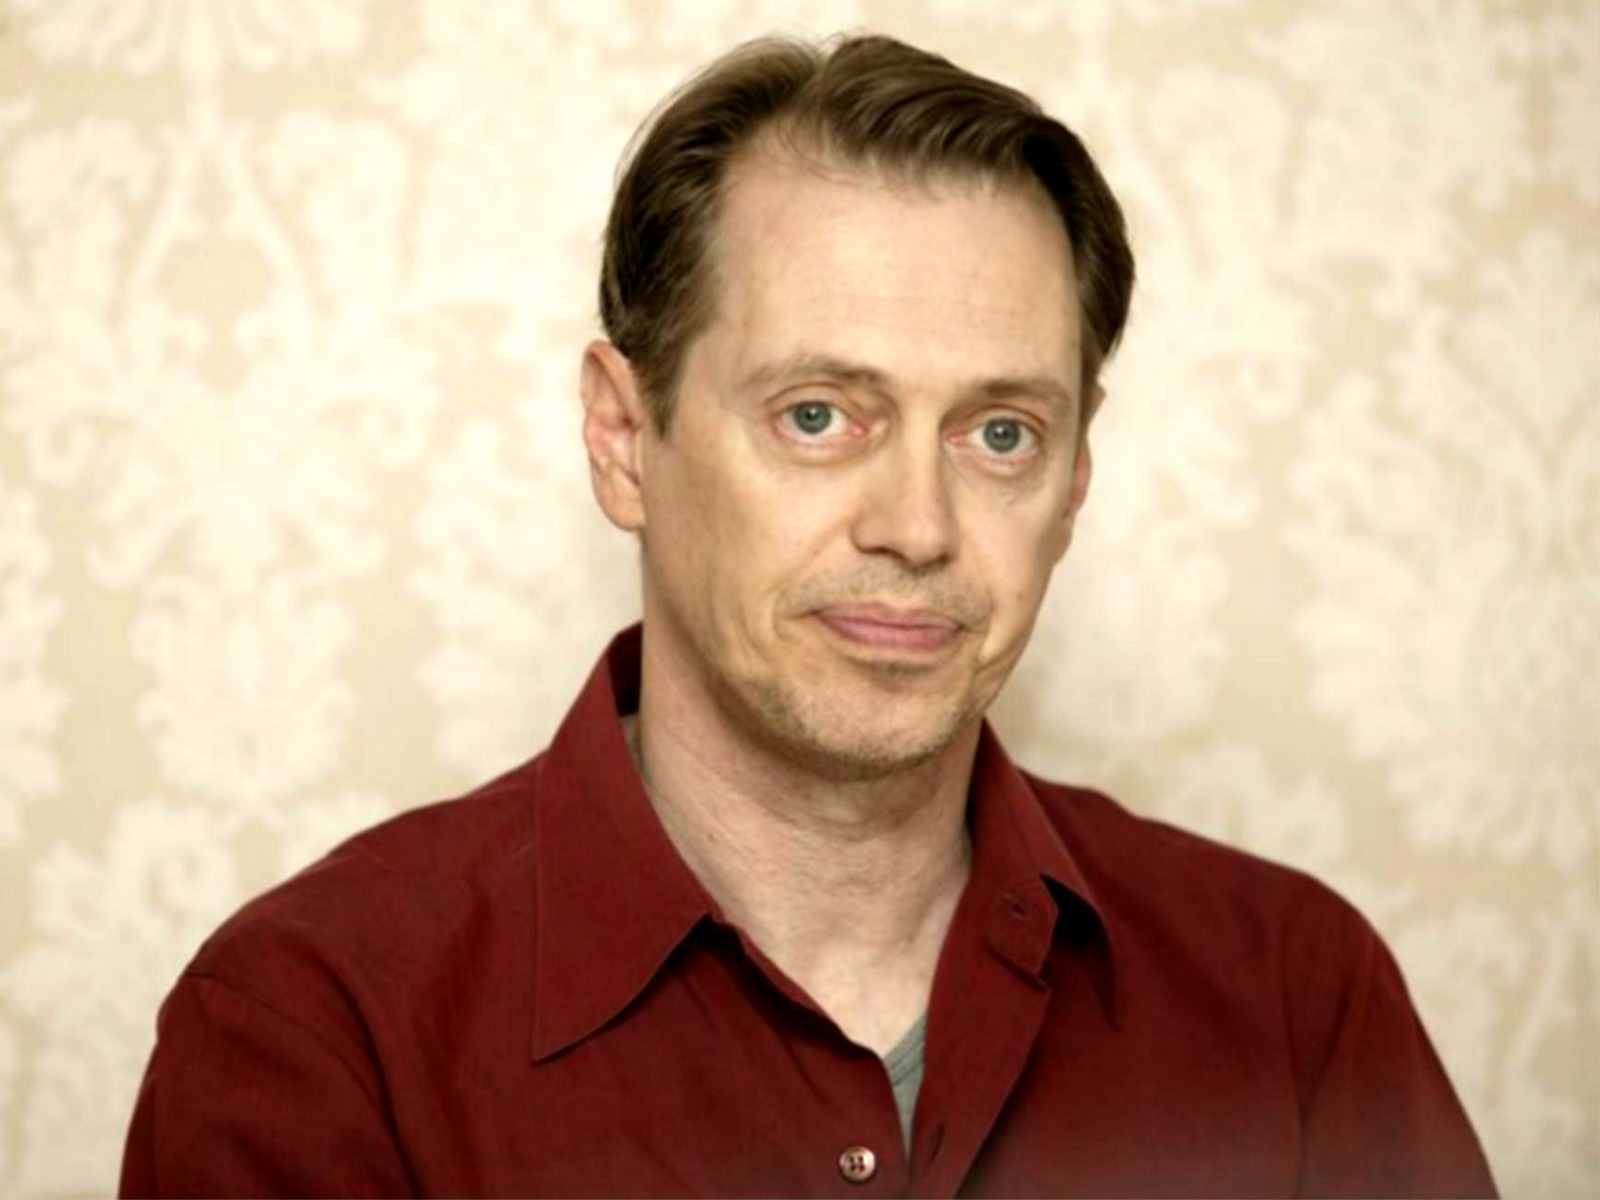 Steve Buscemi wallpaper 1600x1200 65063 1600x1200